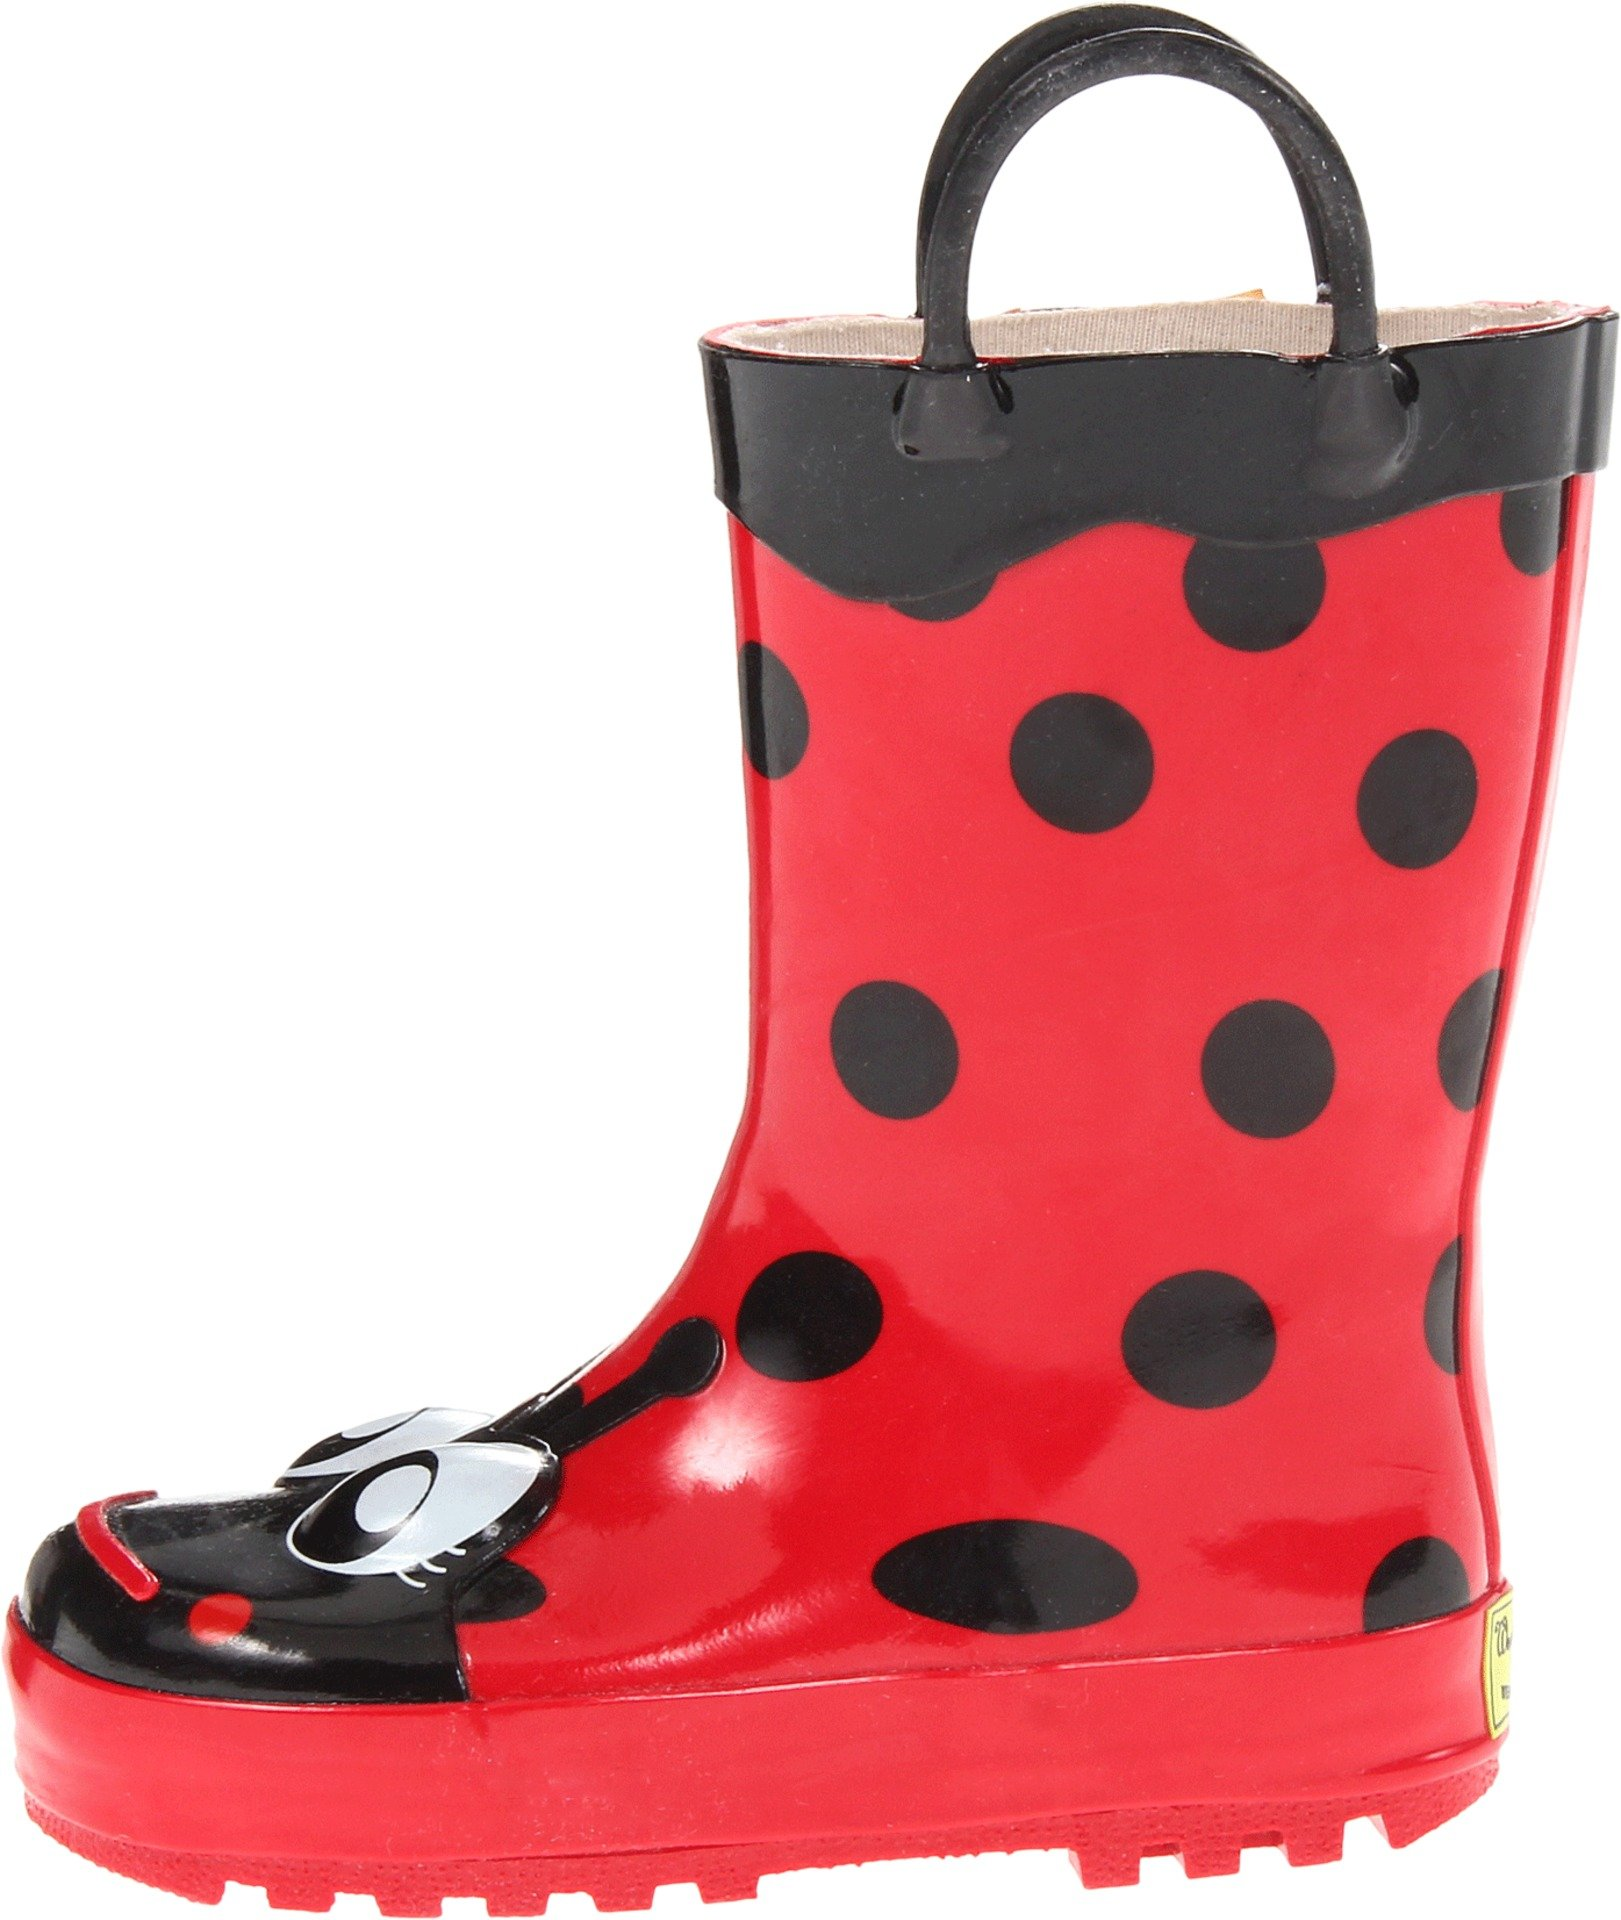 Western Chief Girls Waterproof Printed Rain Boot with Easy Pull on Handles, Lucy the Ladybug, 11 M US Little Kid by Western Chief (Image #5)